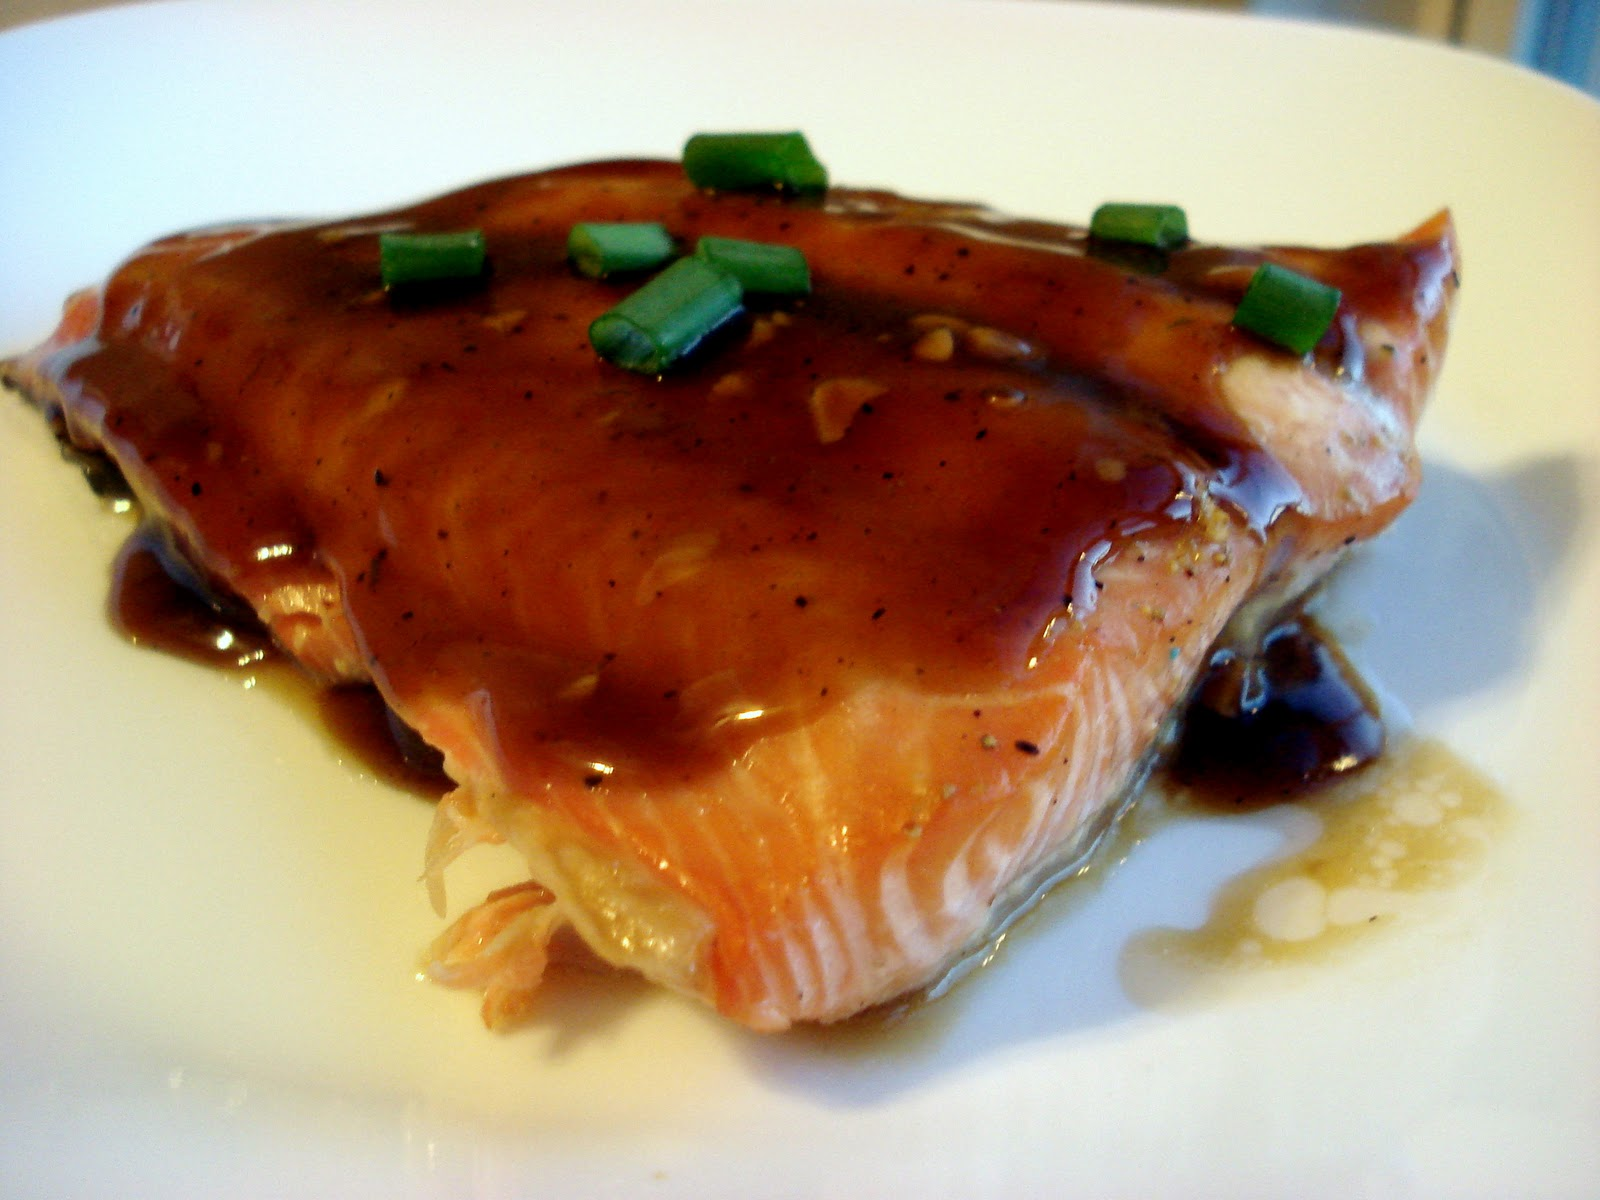 Bakestravaganza: Maple Glazed Salmon